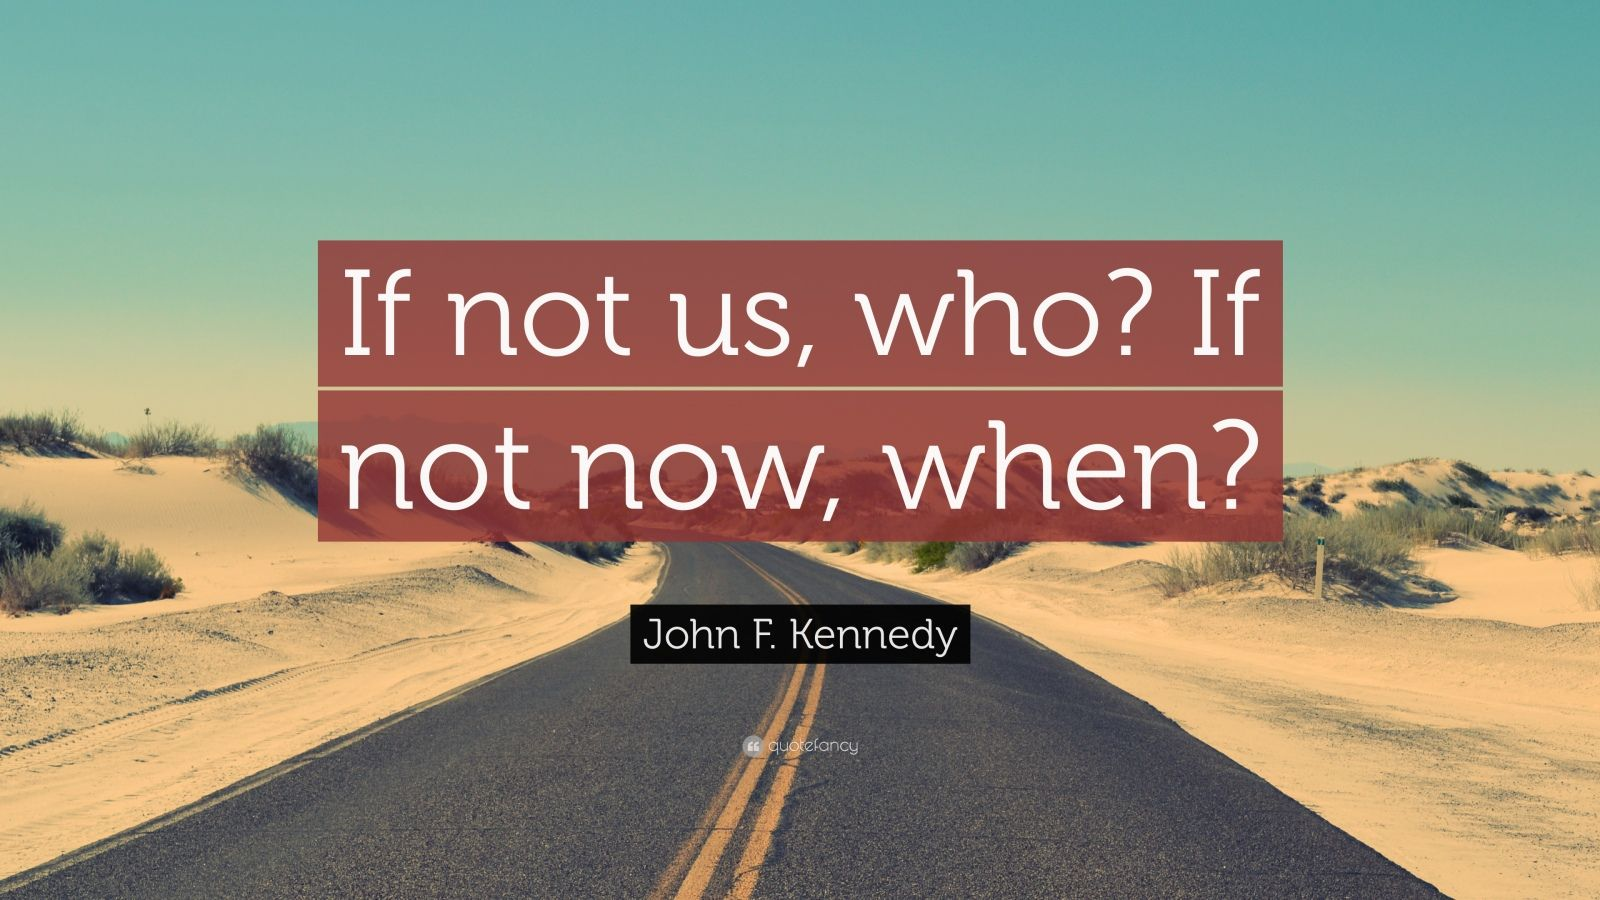 Napoleon Hill Quotes Wallpaper John F Kennedy Quote If Not Us Who If Not Now When